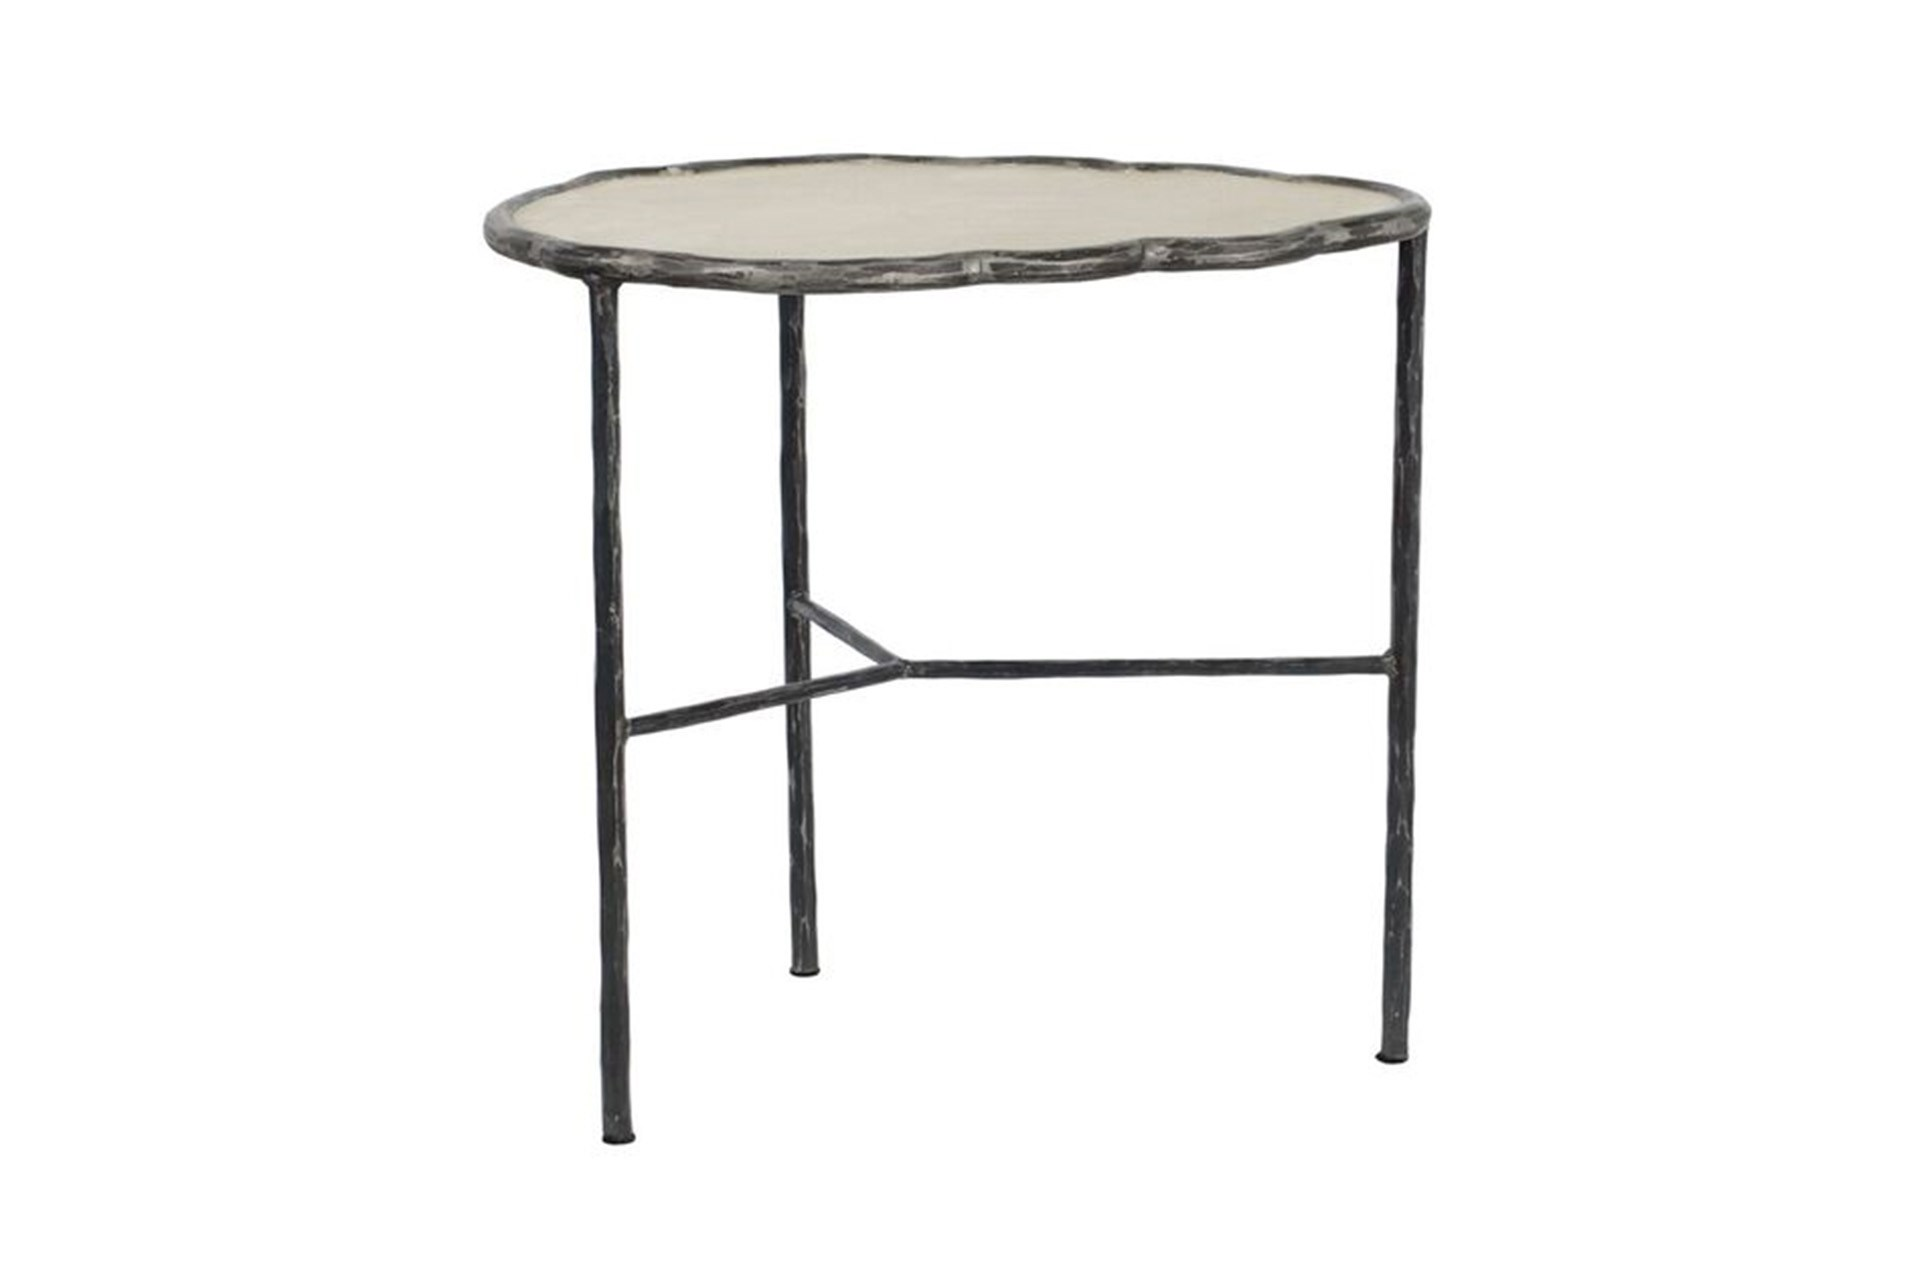 cast iron cement accent table living spaces white multimedia black amp qty has been successfully your cart square acrylic wingback chair narrow side with barn door diy furniture